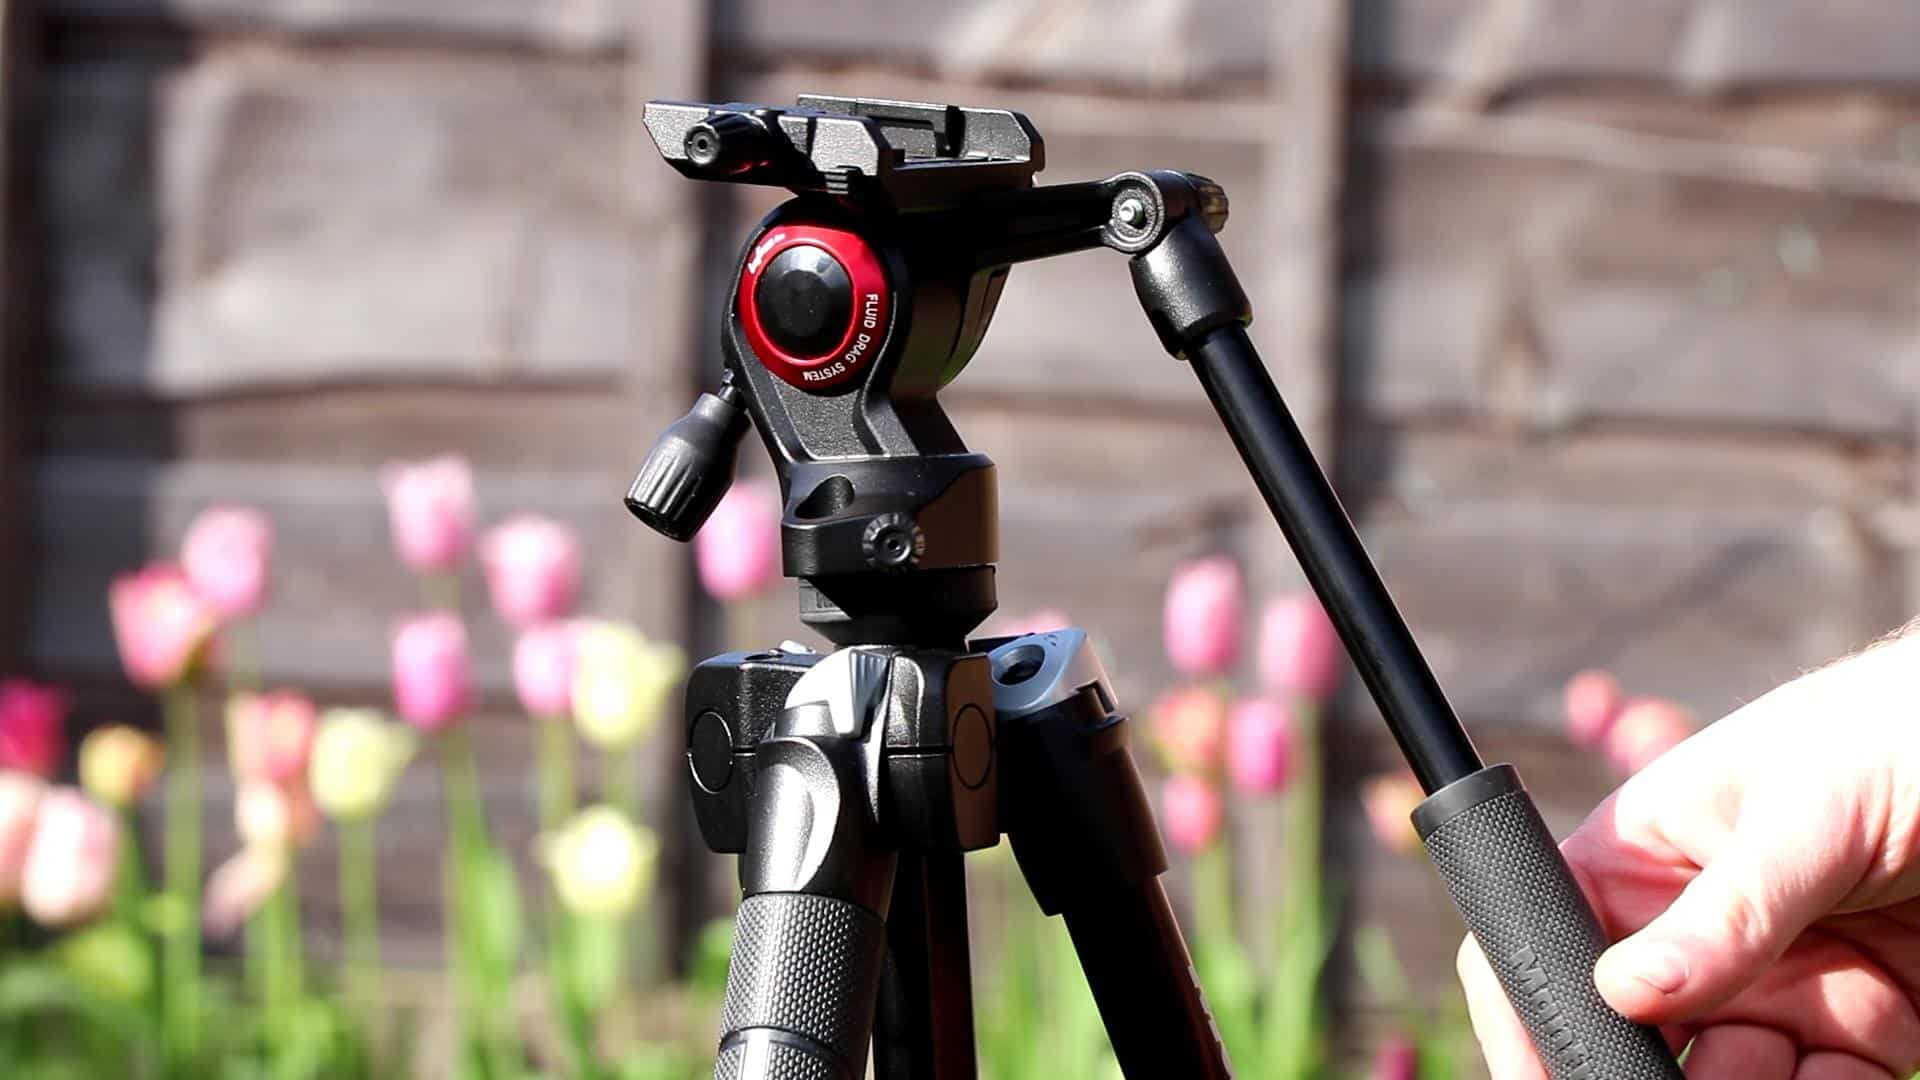 Manfrotto BeFree Tripod with Fluid Head Review